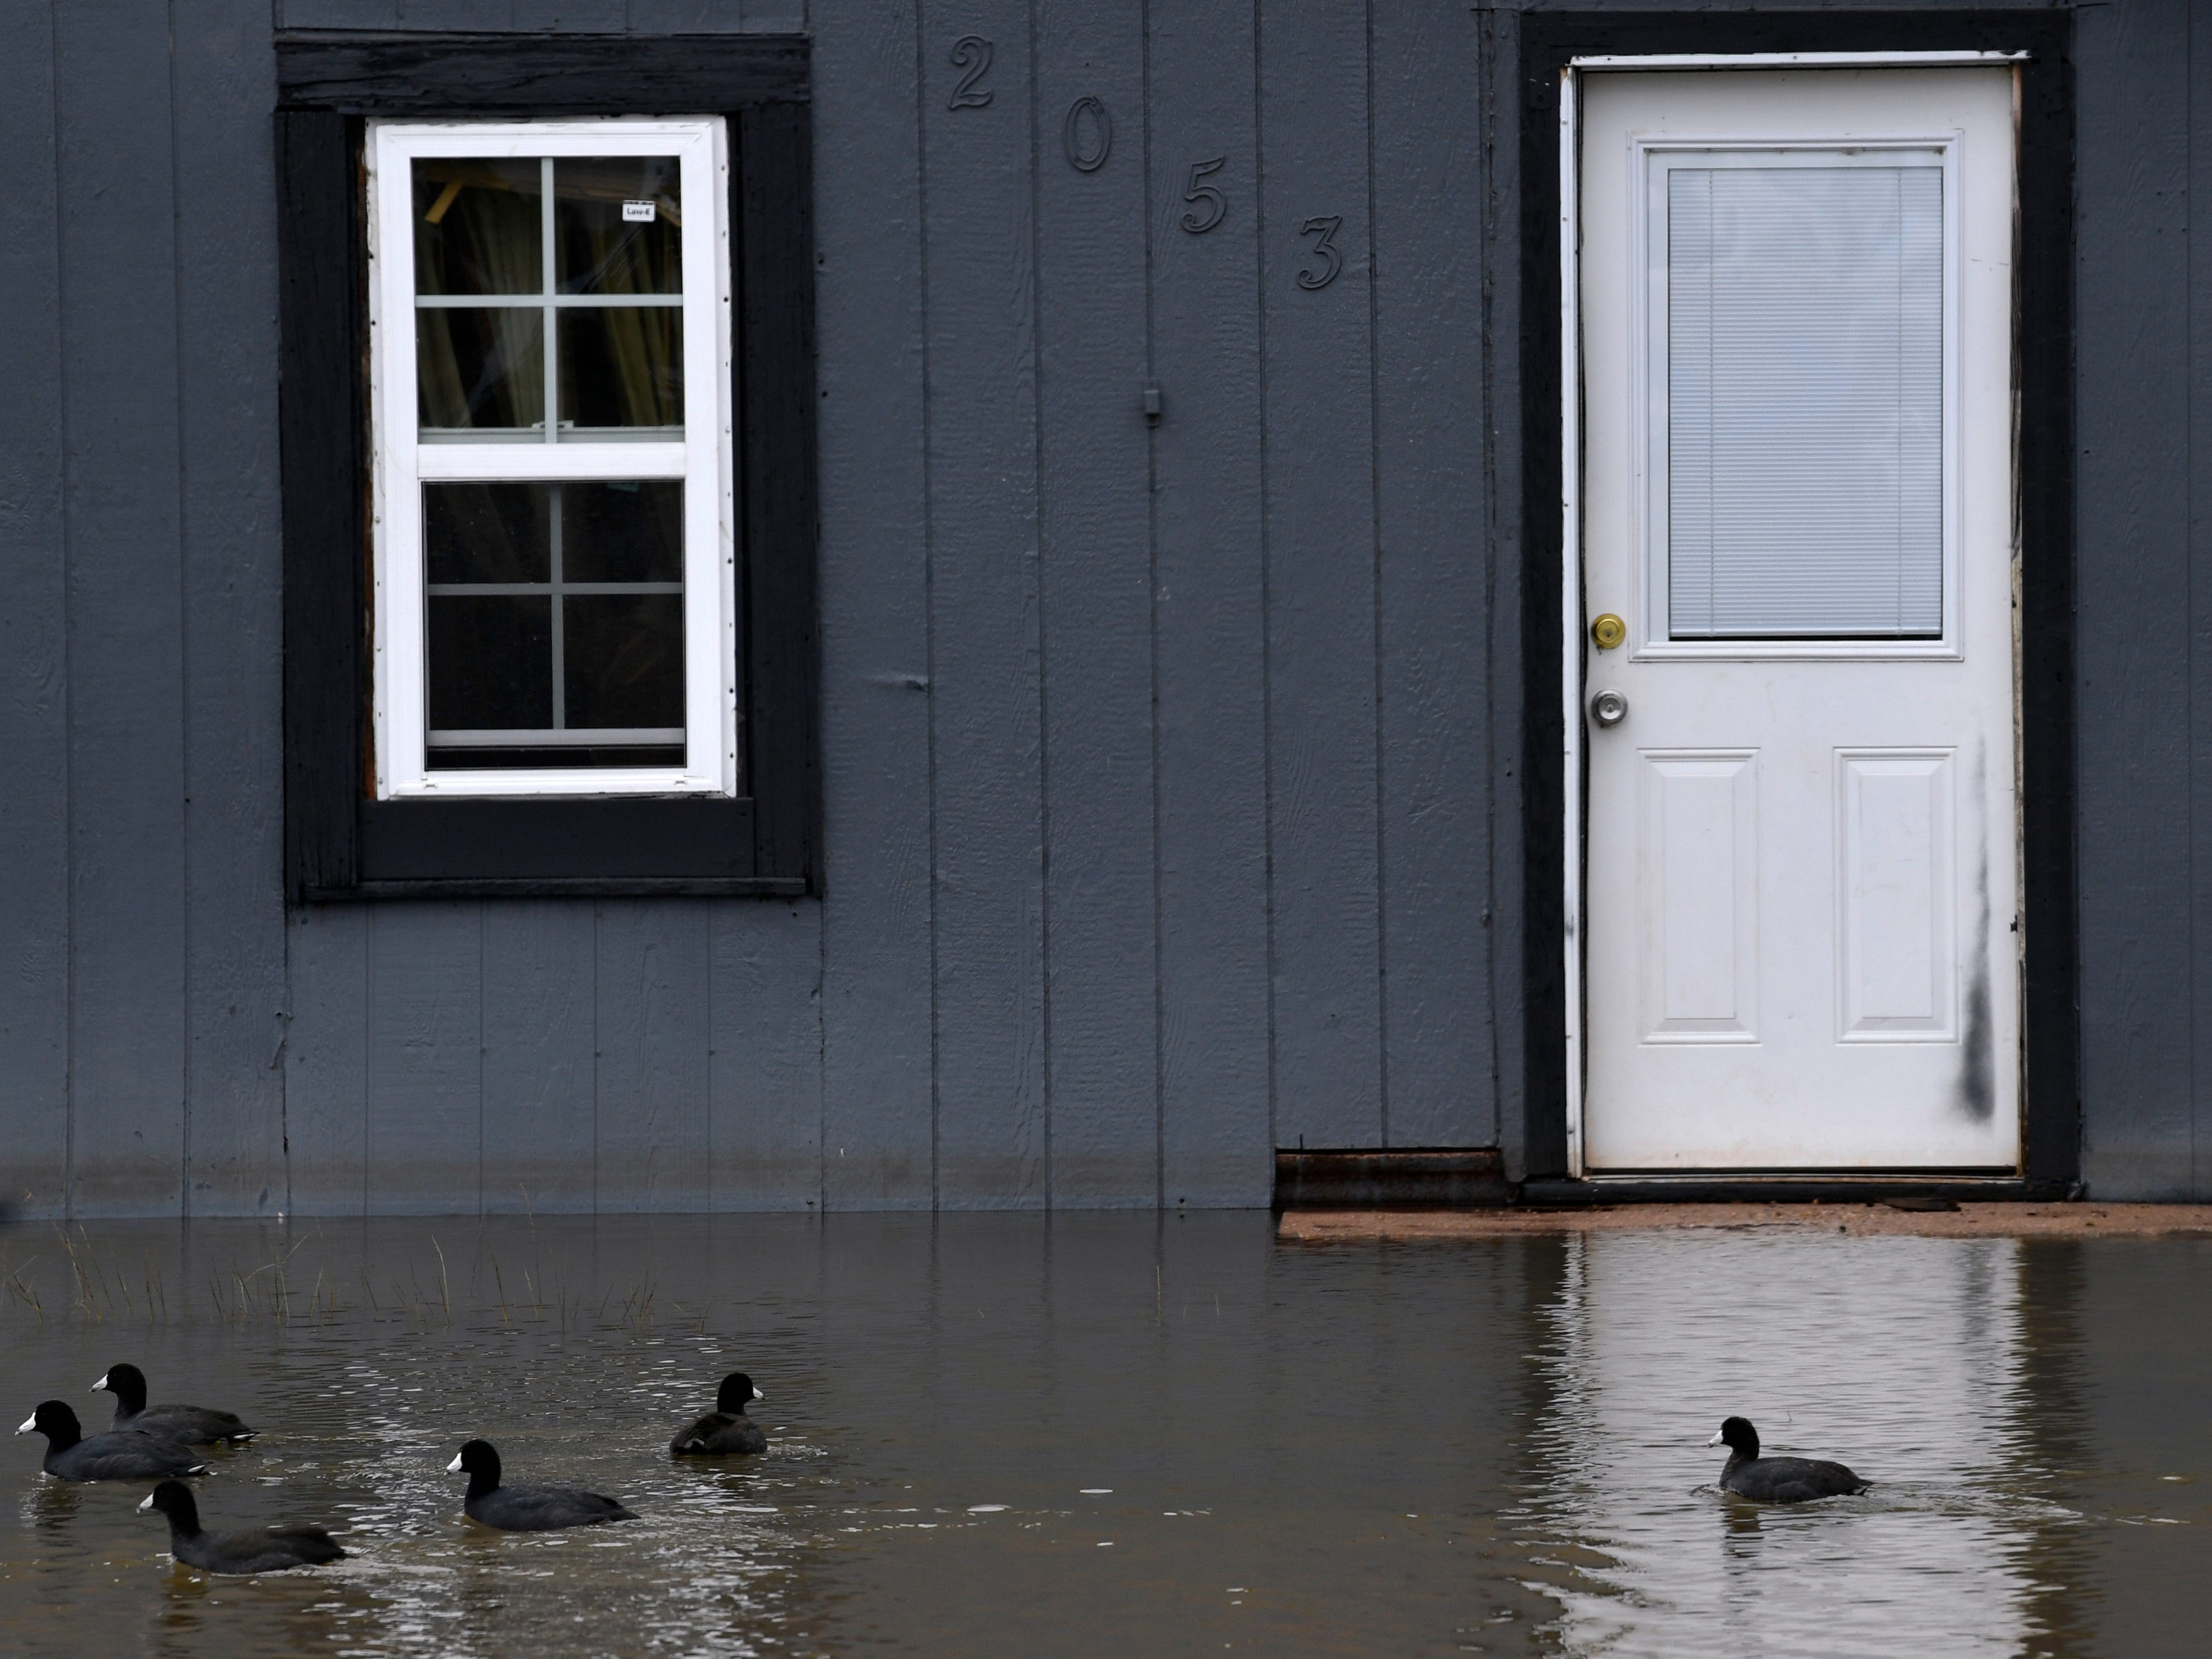 Waterfowl swim past a home's door Thursday Oct. 18, 2018 at Lake Stamford. Heavy rains have filled the lake to overflowing, flooding homes along the shore for the first time in several years.